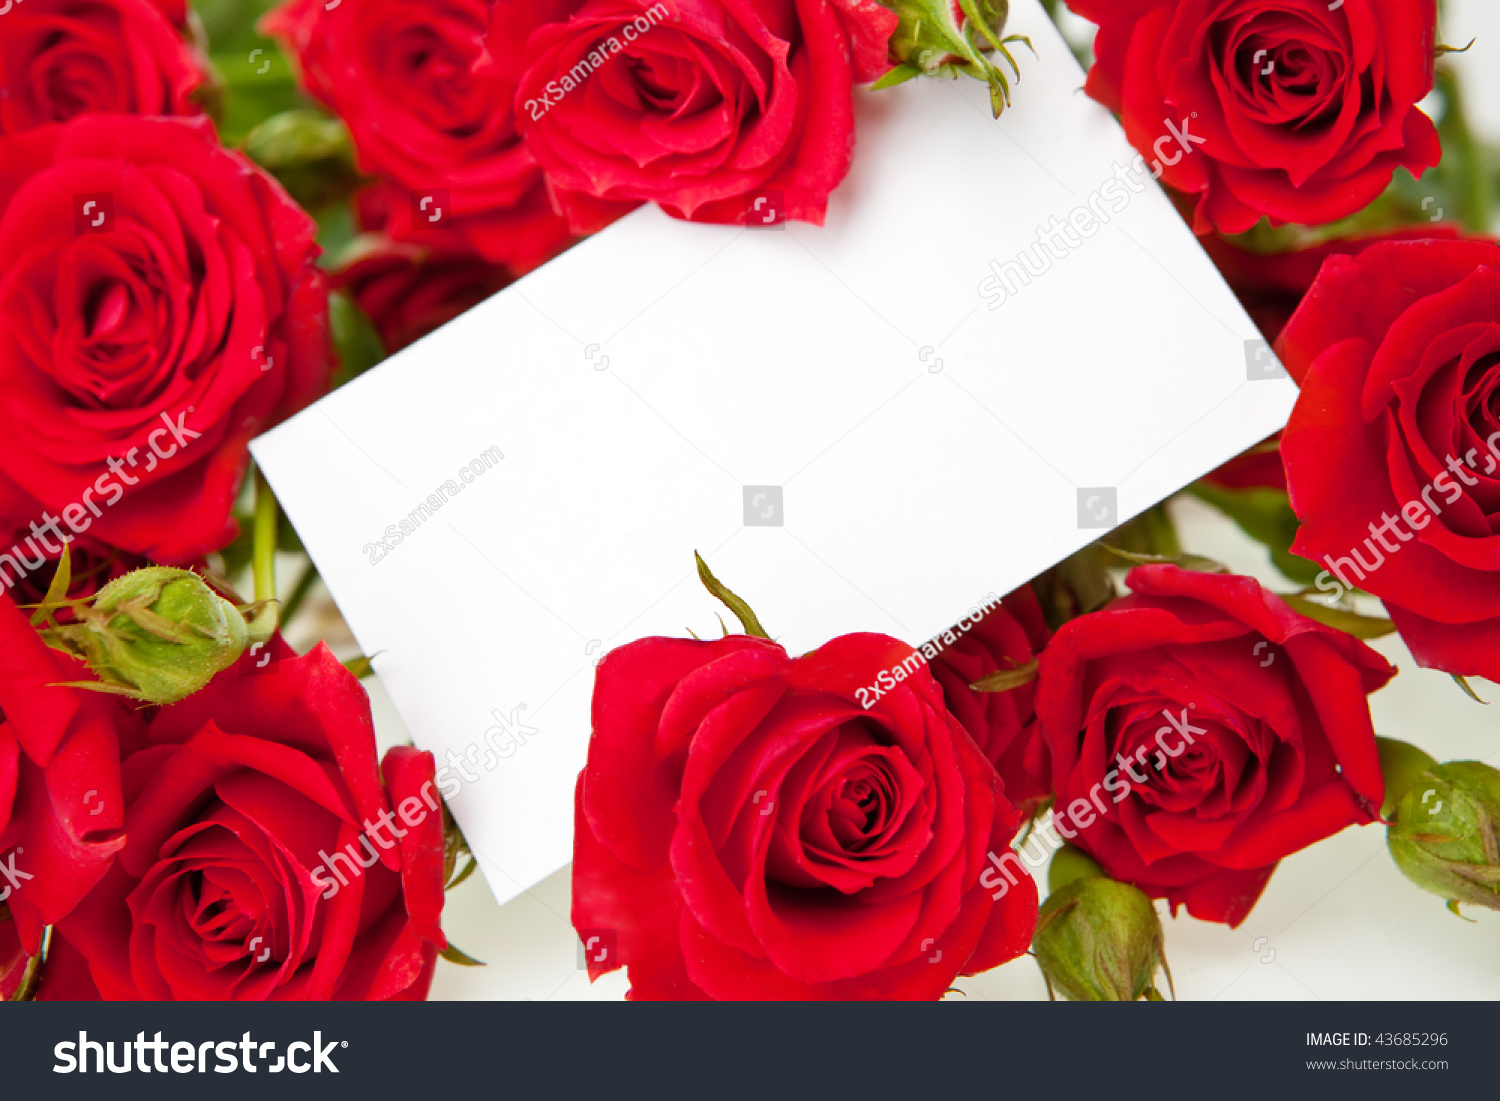 Red Roses Blank Invitation Card Stock Photo (Royalty Free) 43685296 ...